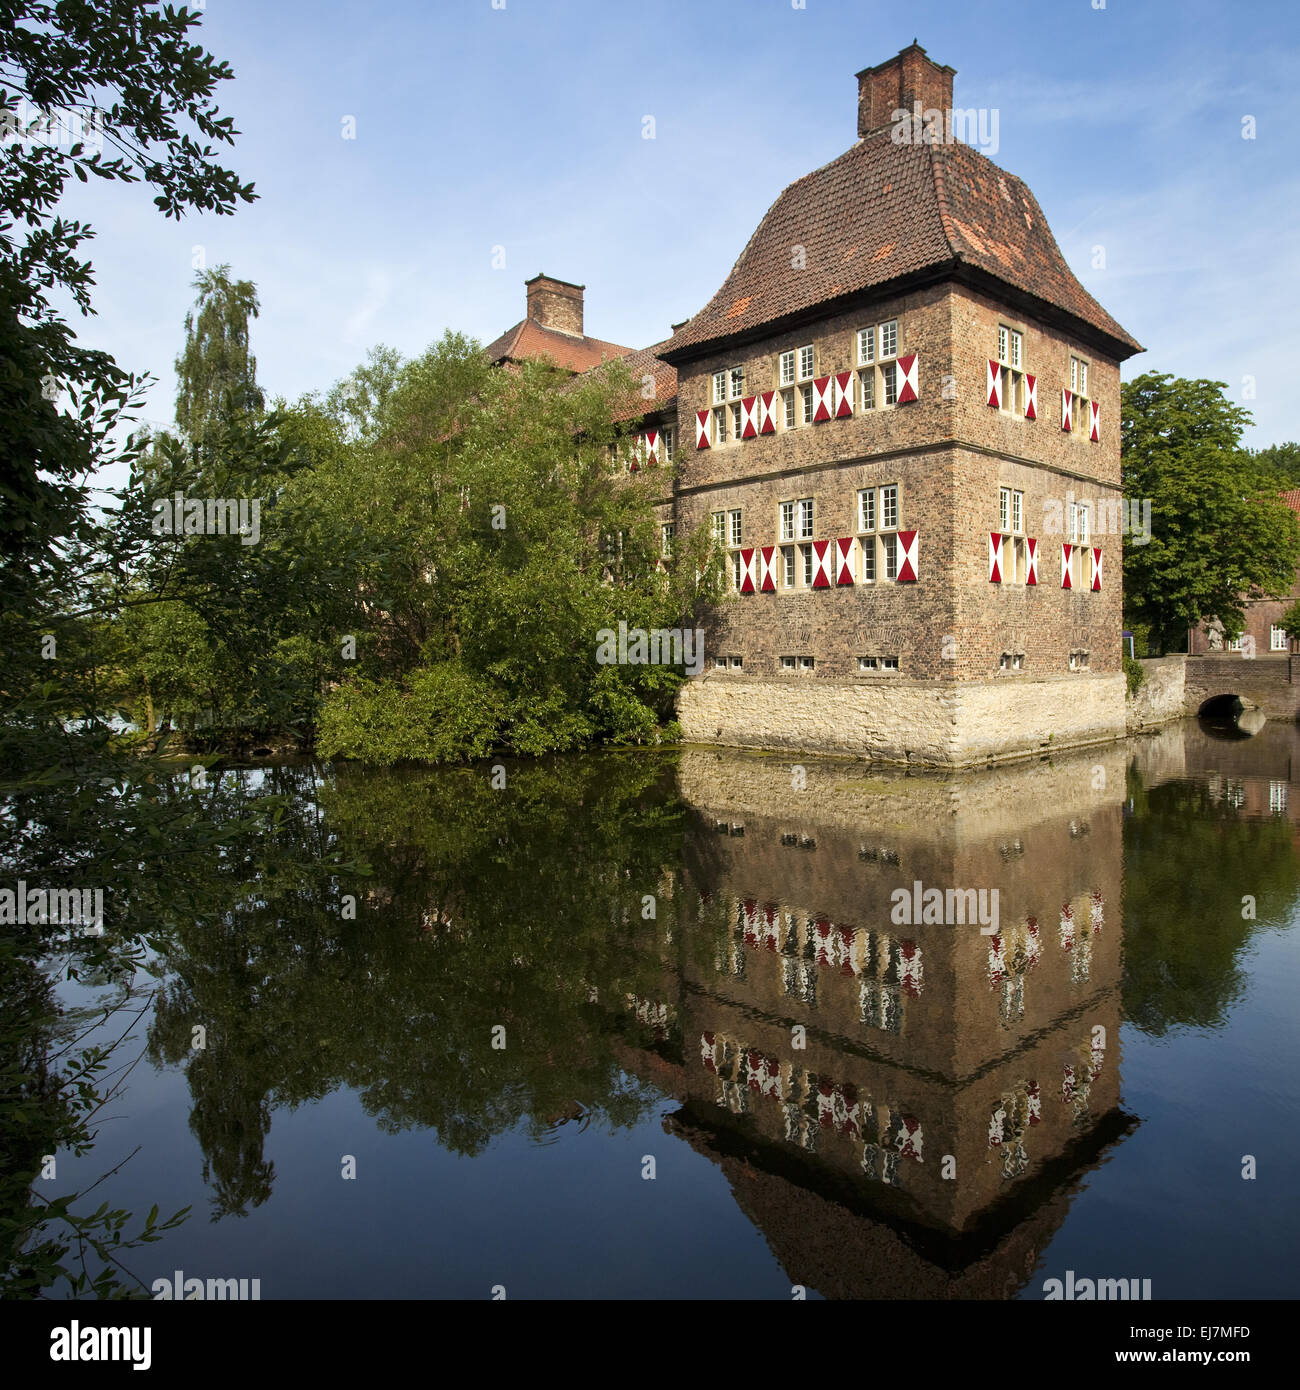 Castle Oberwerries, Hamm, Germany Stock Photo